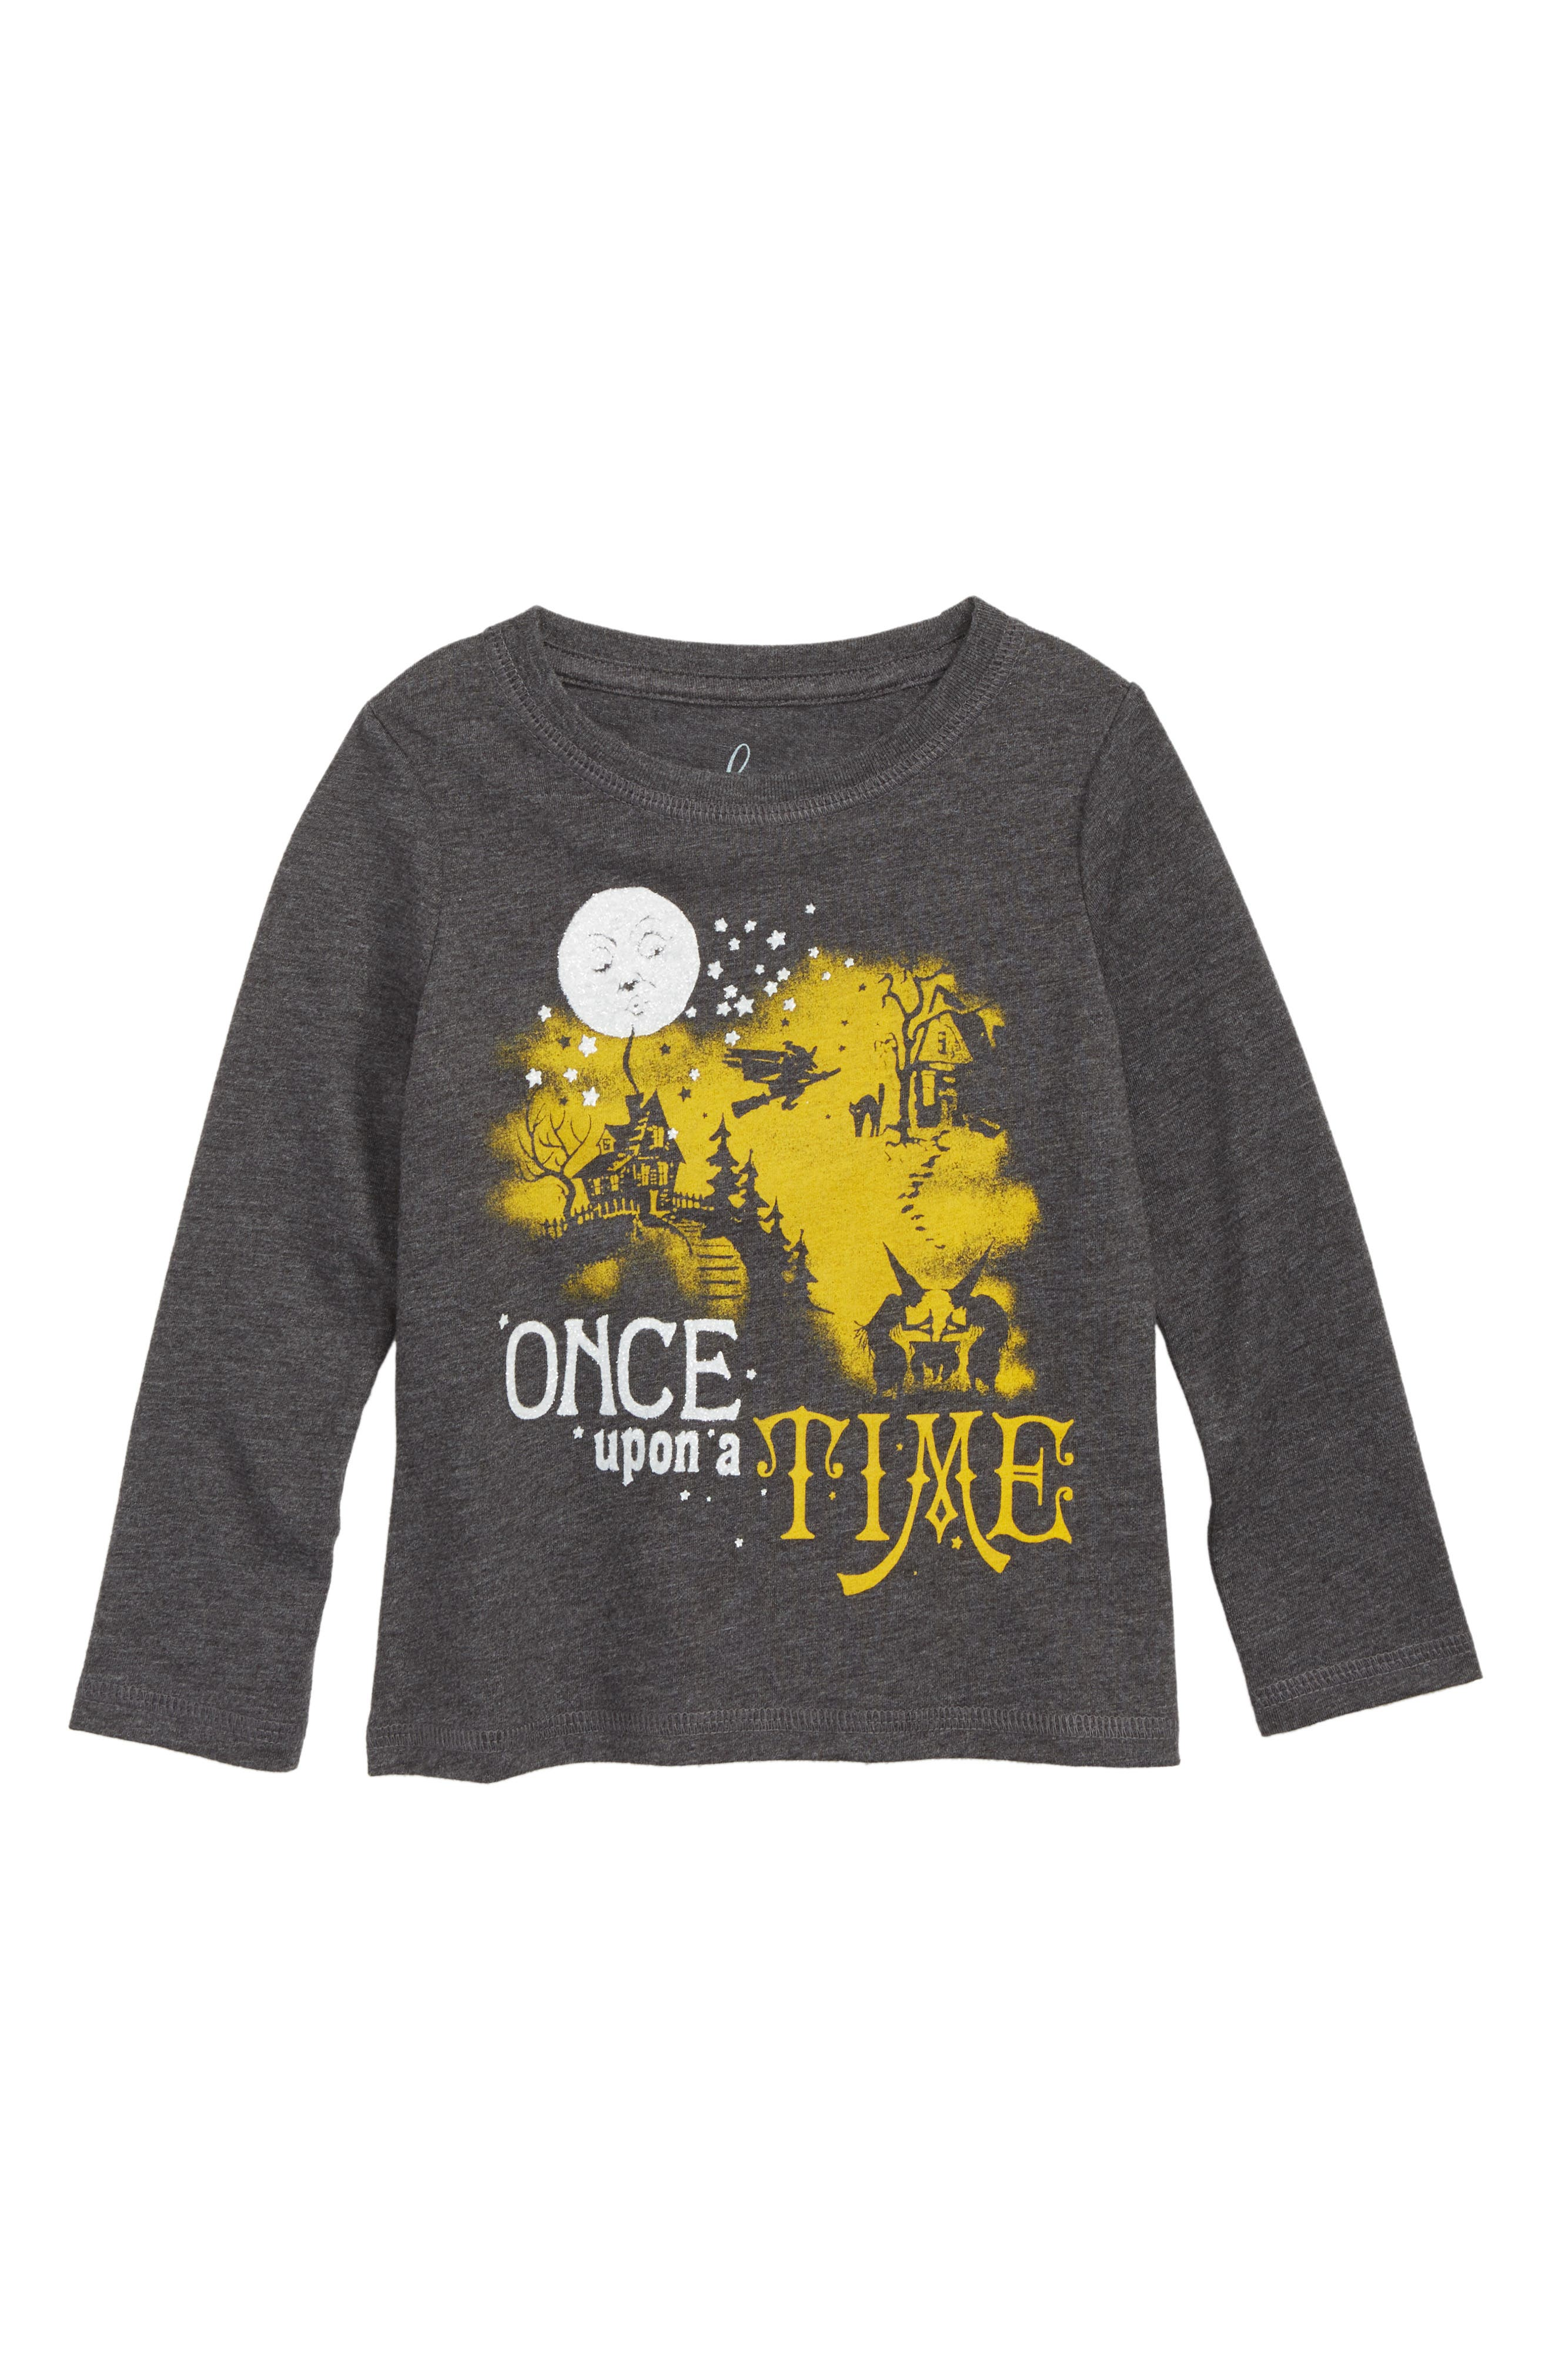 Once Upon a Time Graphic Tee,                             Main thumbnail 1, color,                             BLACK